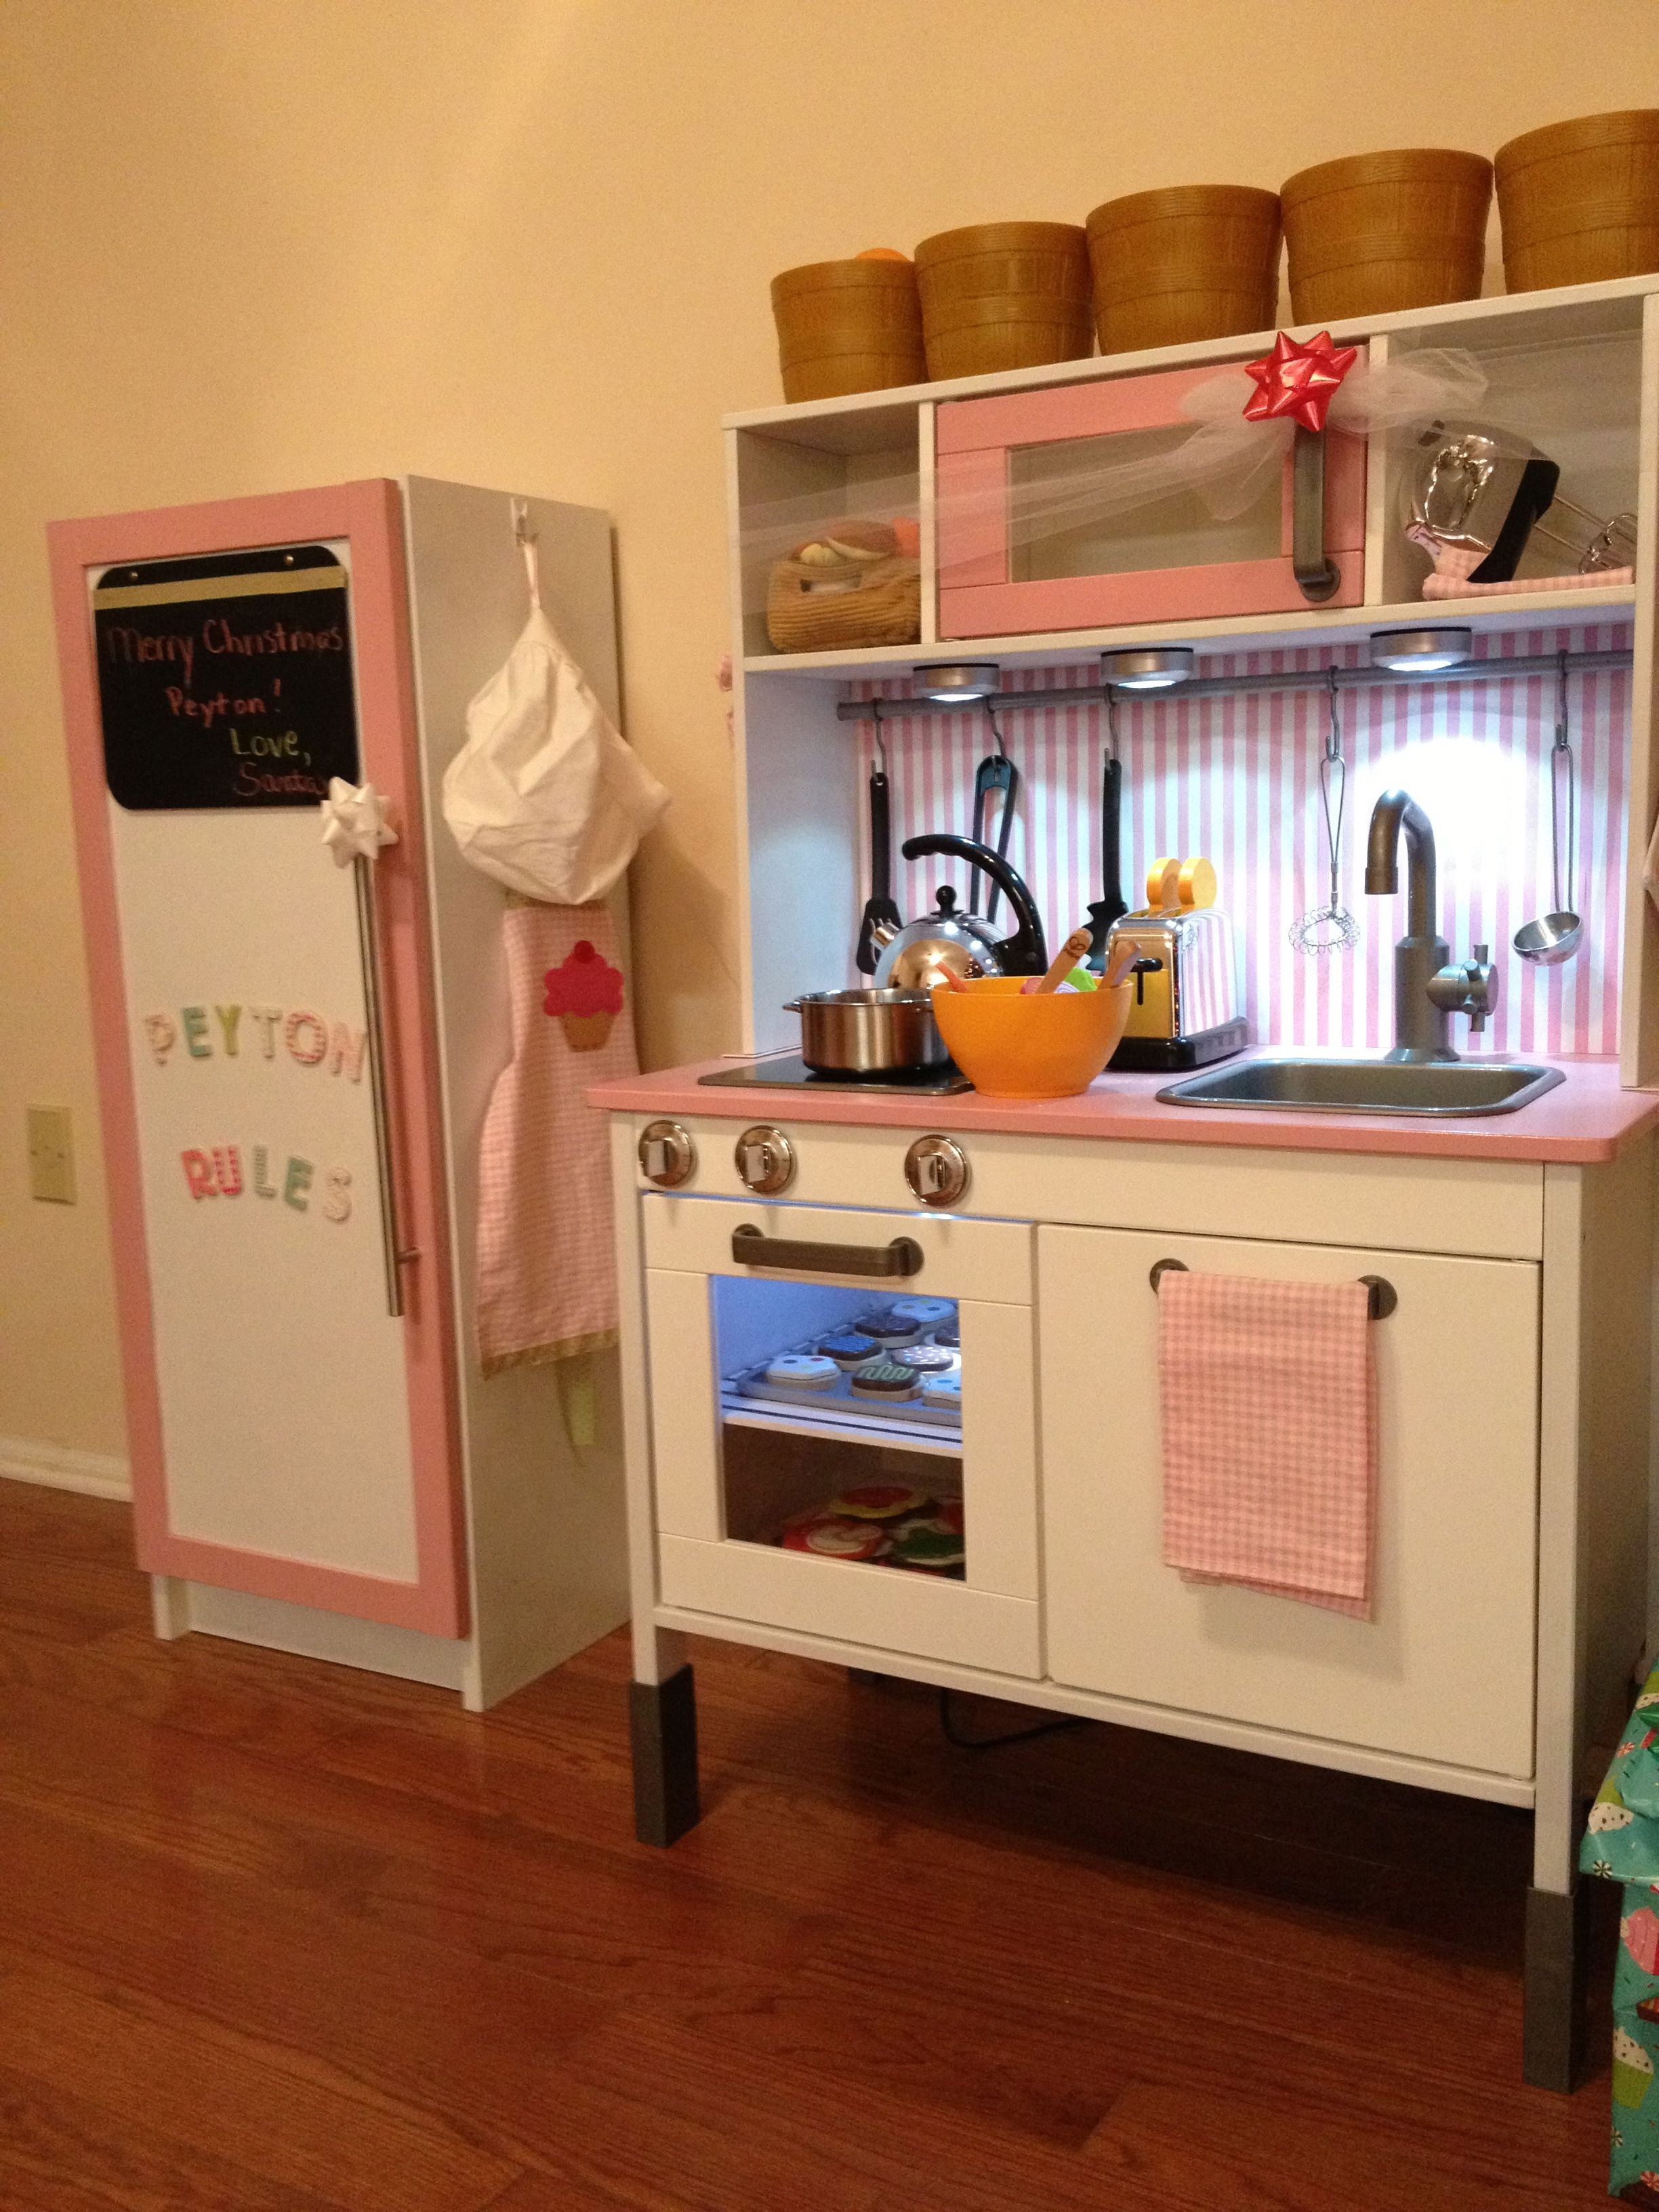 The 5 best DIY play kitchens